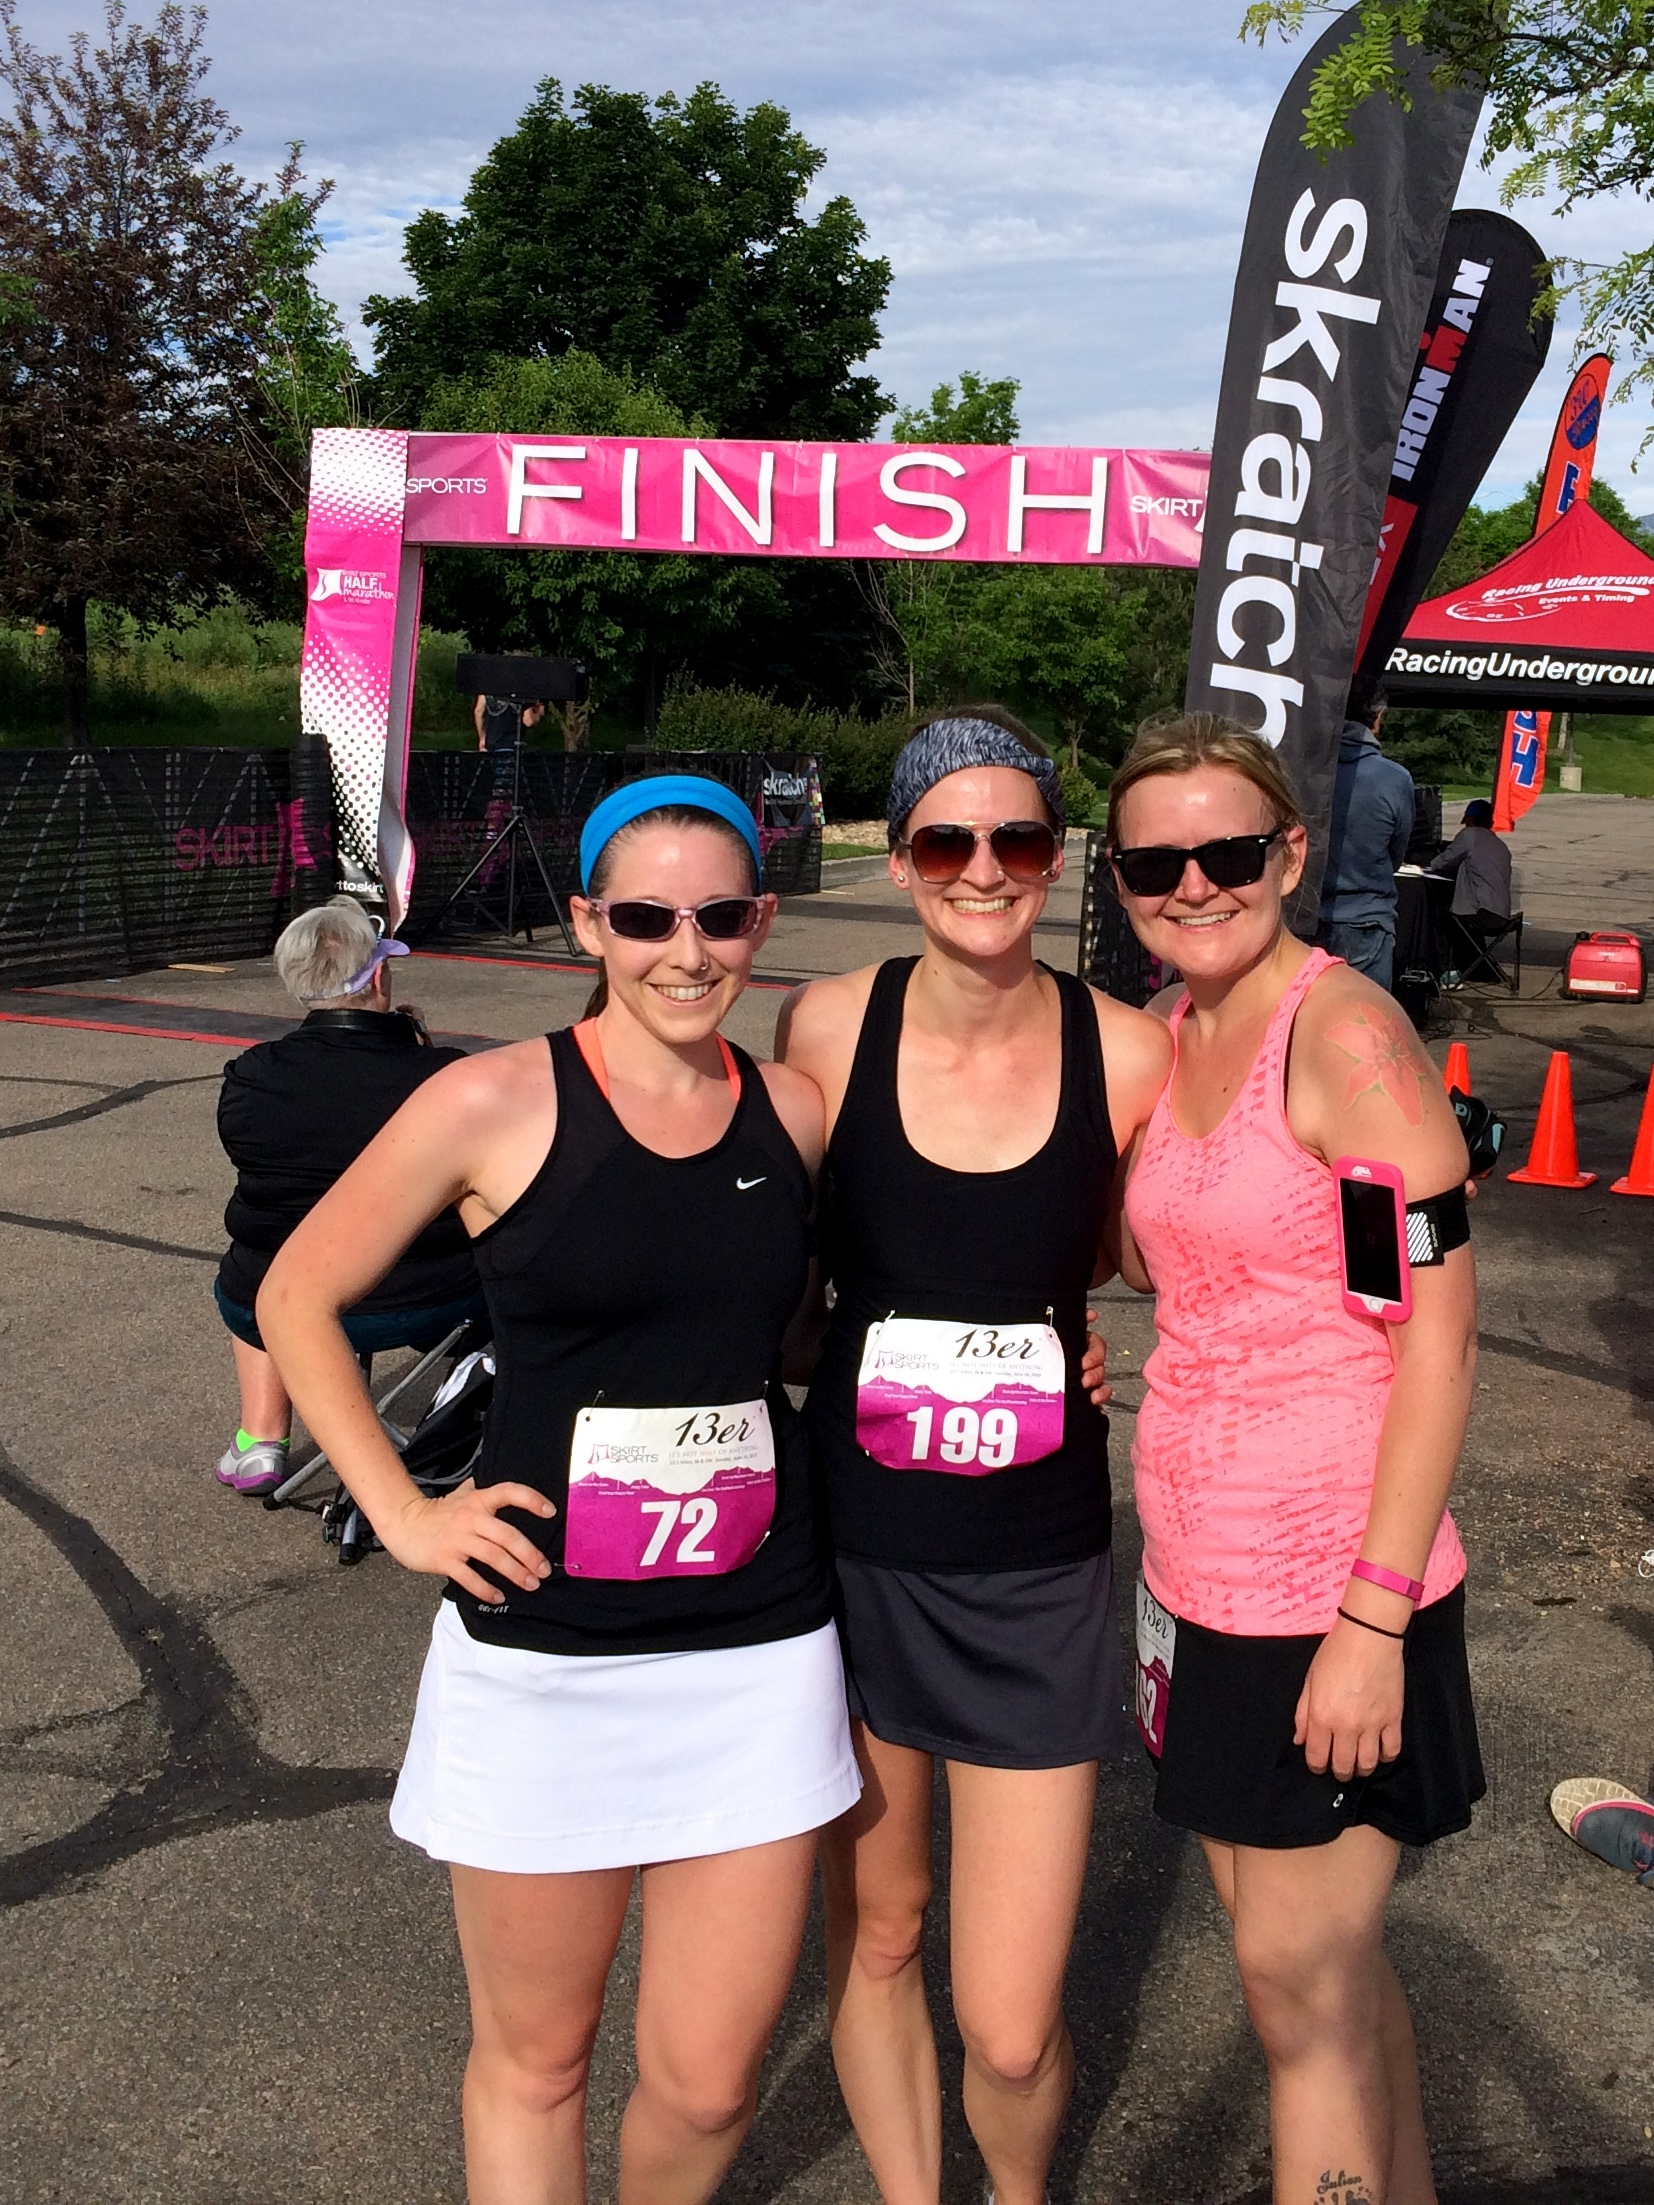 A picture from my longest run yet! Excited to run my first half with these beautiful ladies: Paige, me, and Melanie at the Skirt Sports 10k last summer.